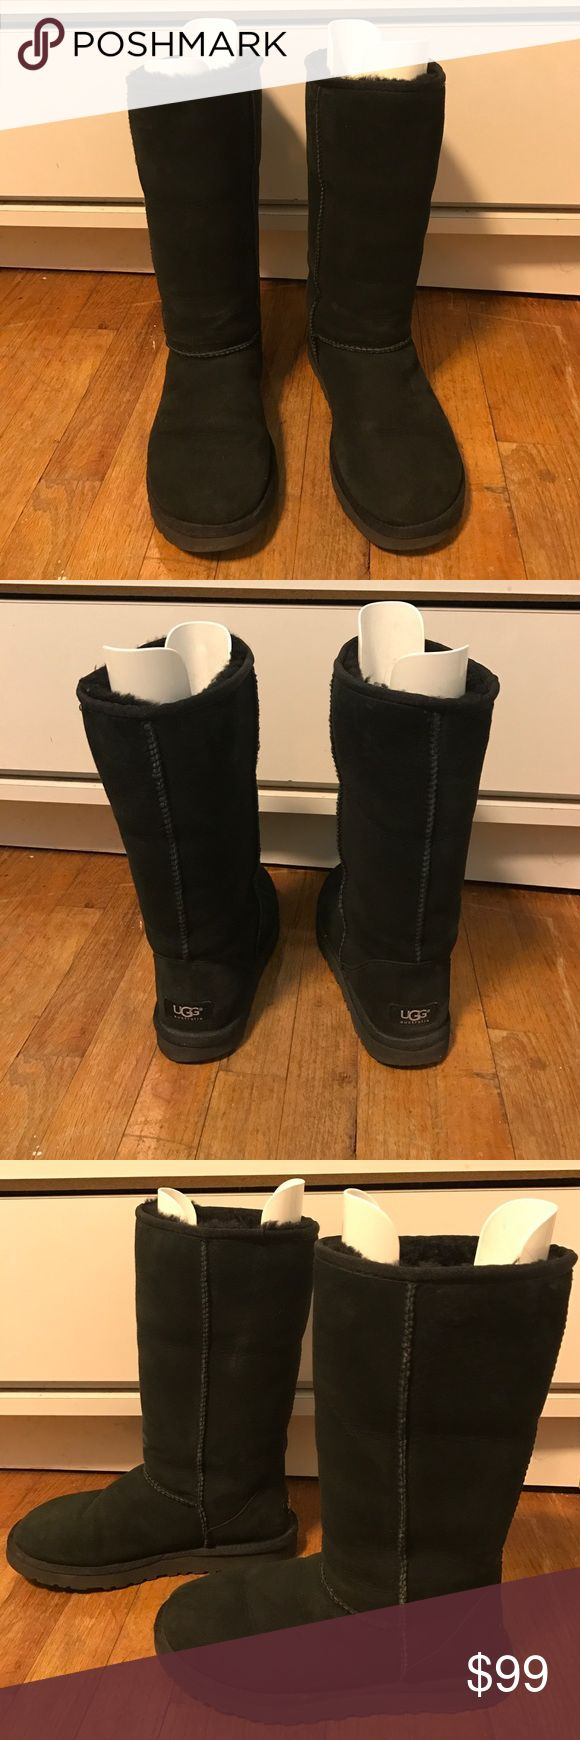 "Ugg Classic Tall Ugg •Authentic Ugg Classic Tall 👢 •Black •Size Women's 7 •11.5"" Shaft Height •Used Good Condition •No bag or box (Boot shapers not included)  •No trades •15% off bundles of 2+ items 🌟 •Ships within 1-2 business days 📫 UGG Shoes Winter & Rain Boots"